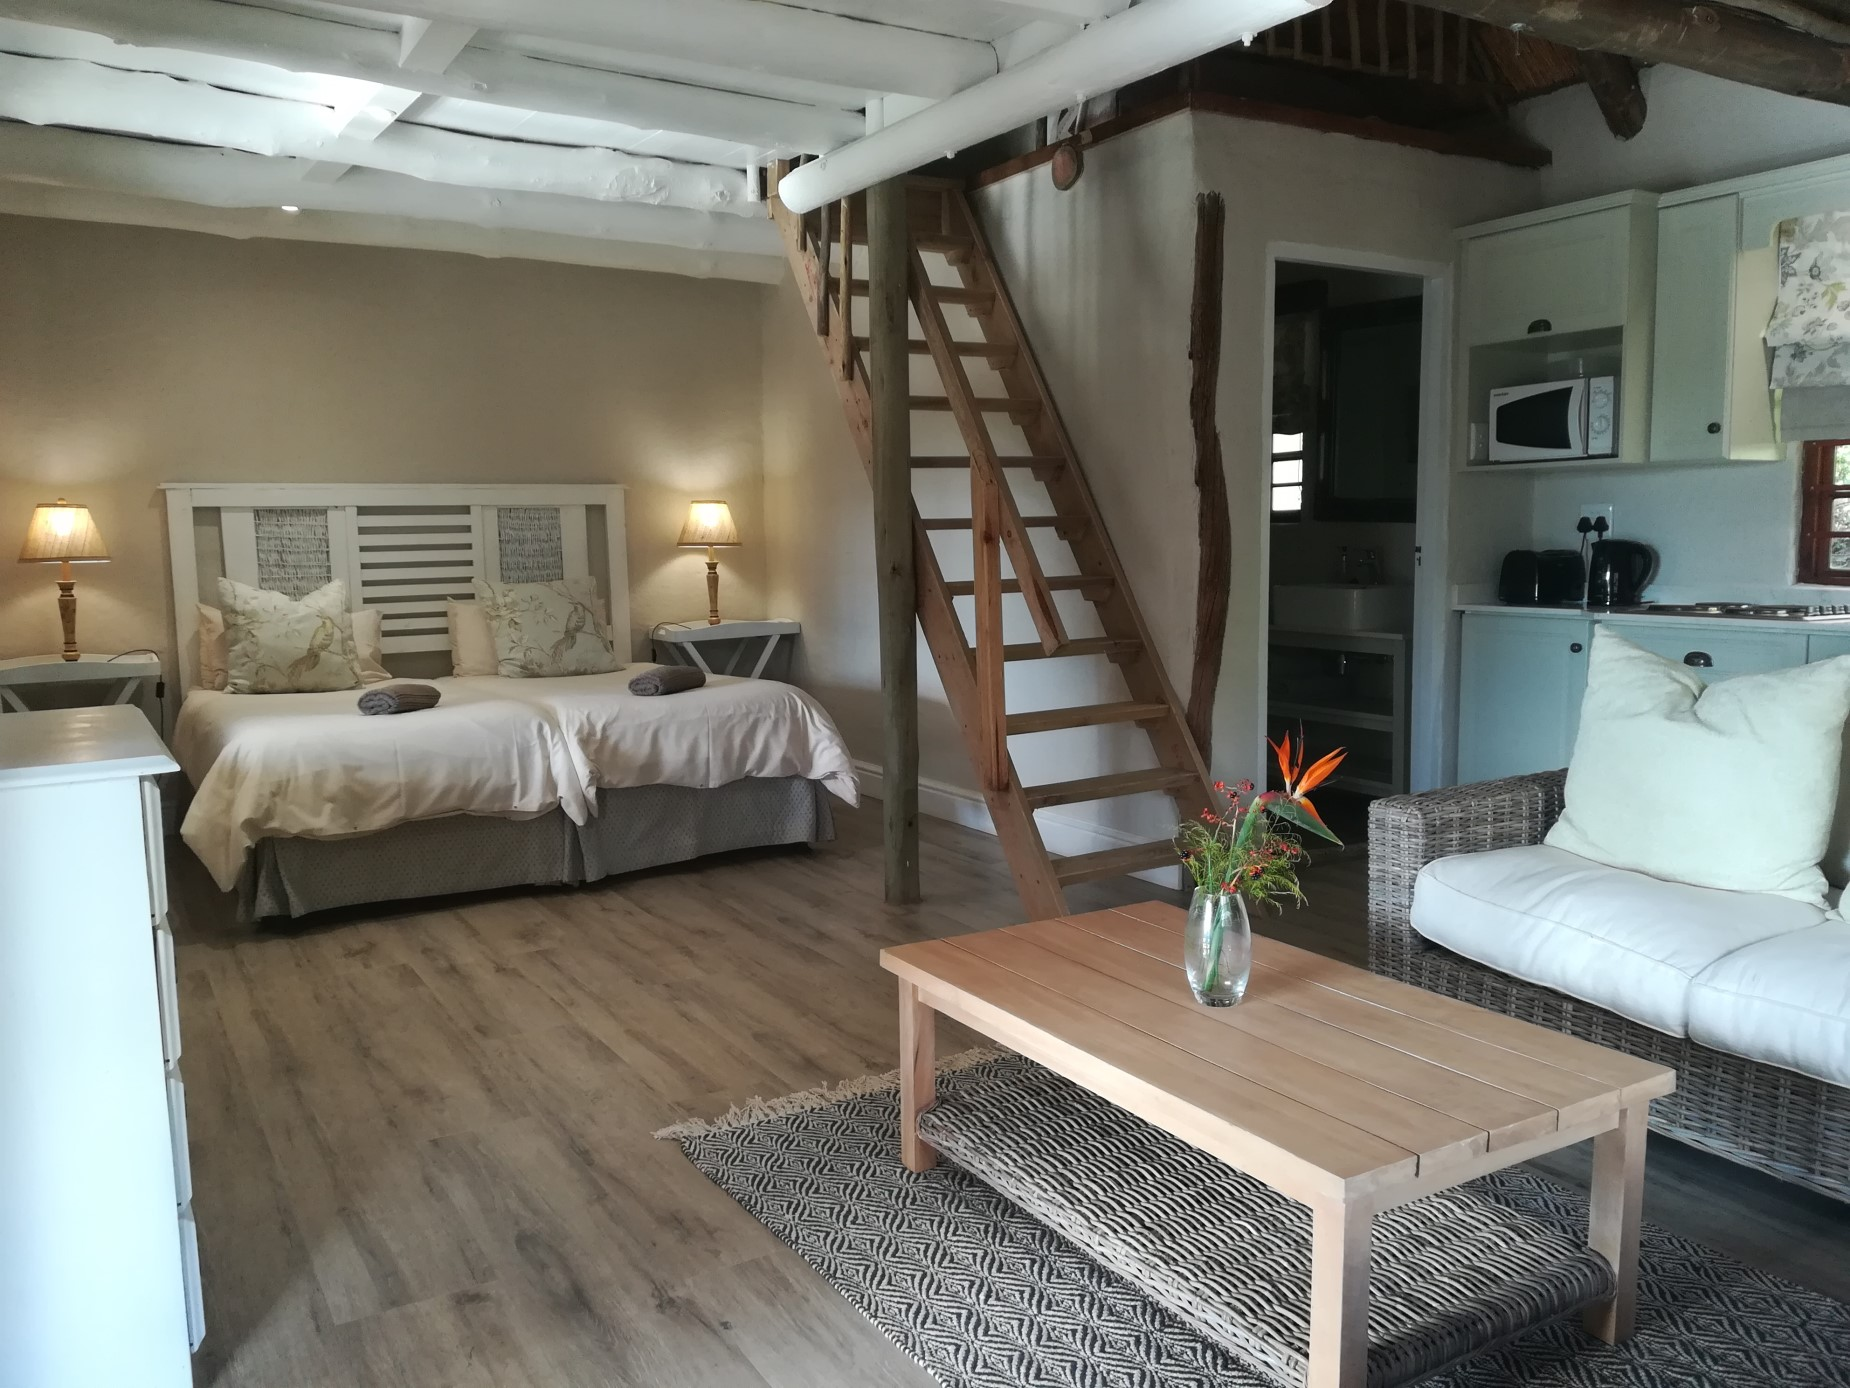 Bedroom with stairs leading to upstairs loft bedroom